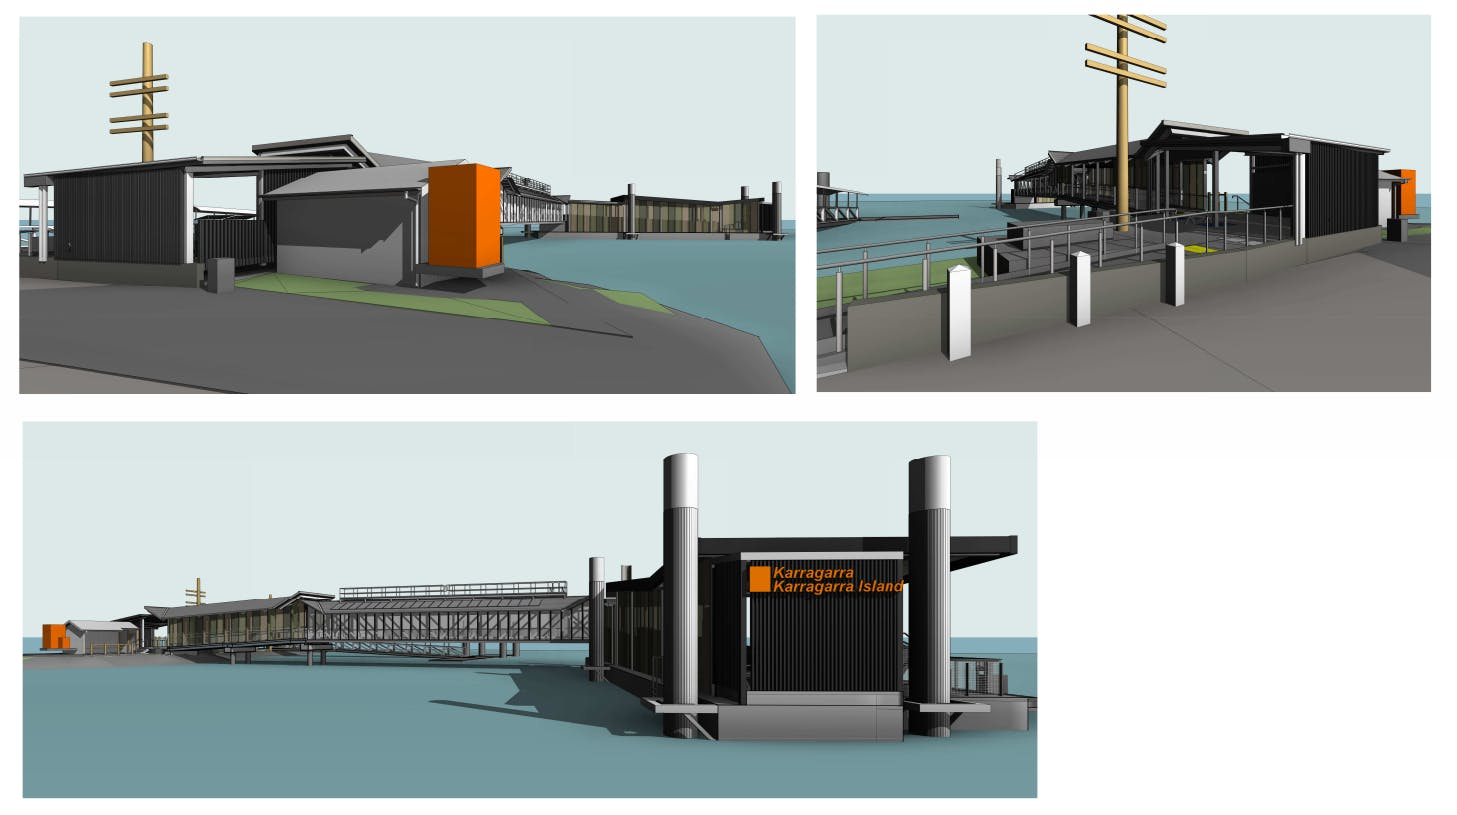 3D images of the future Karragarra Island ferry terminal